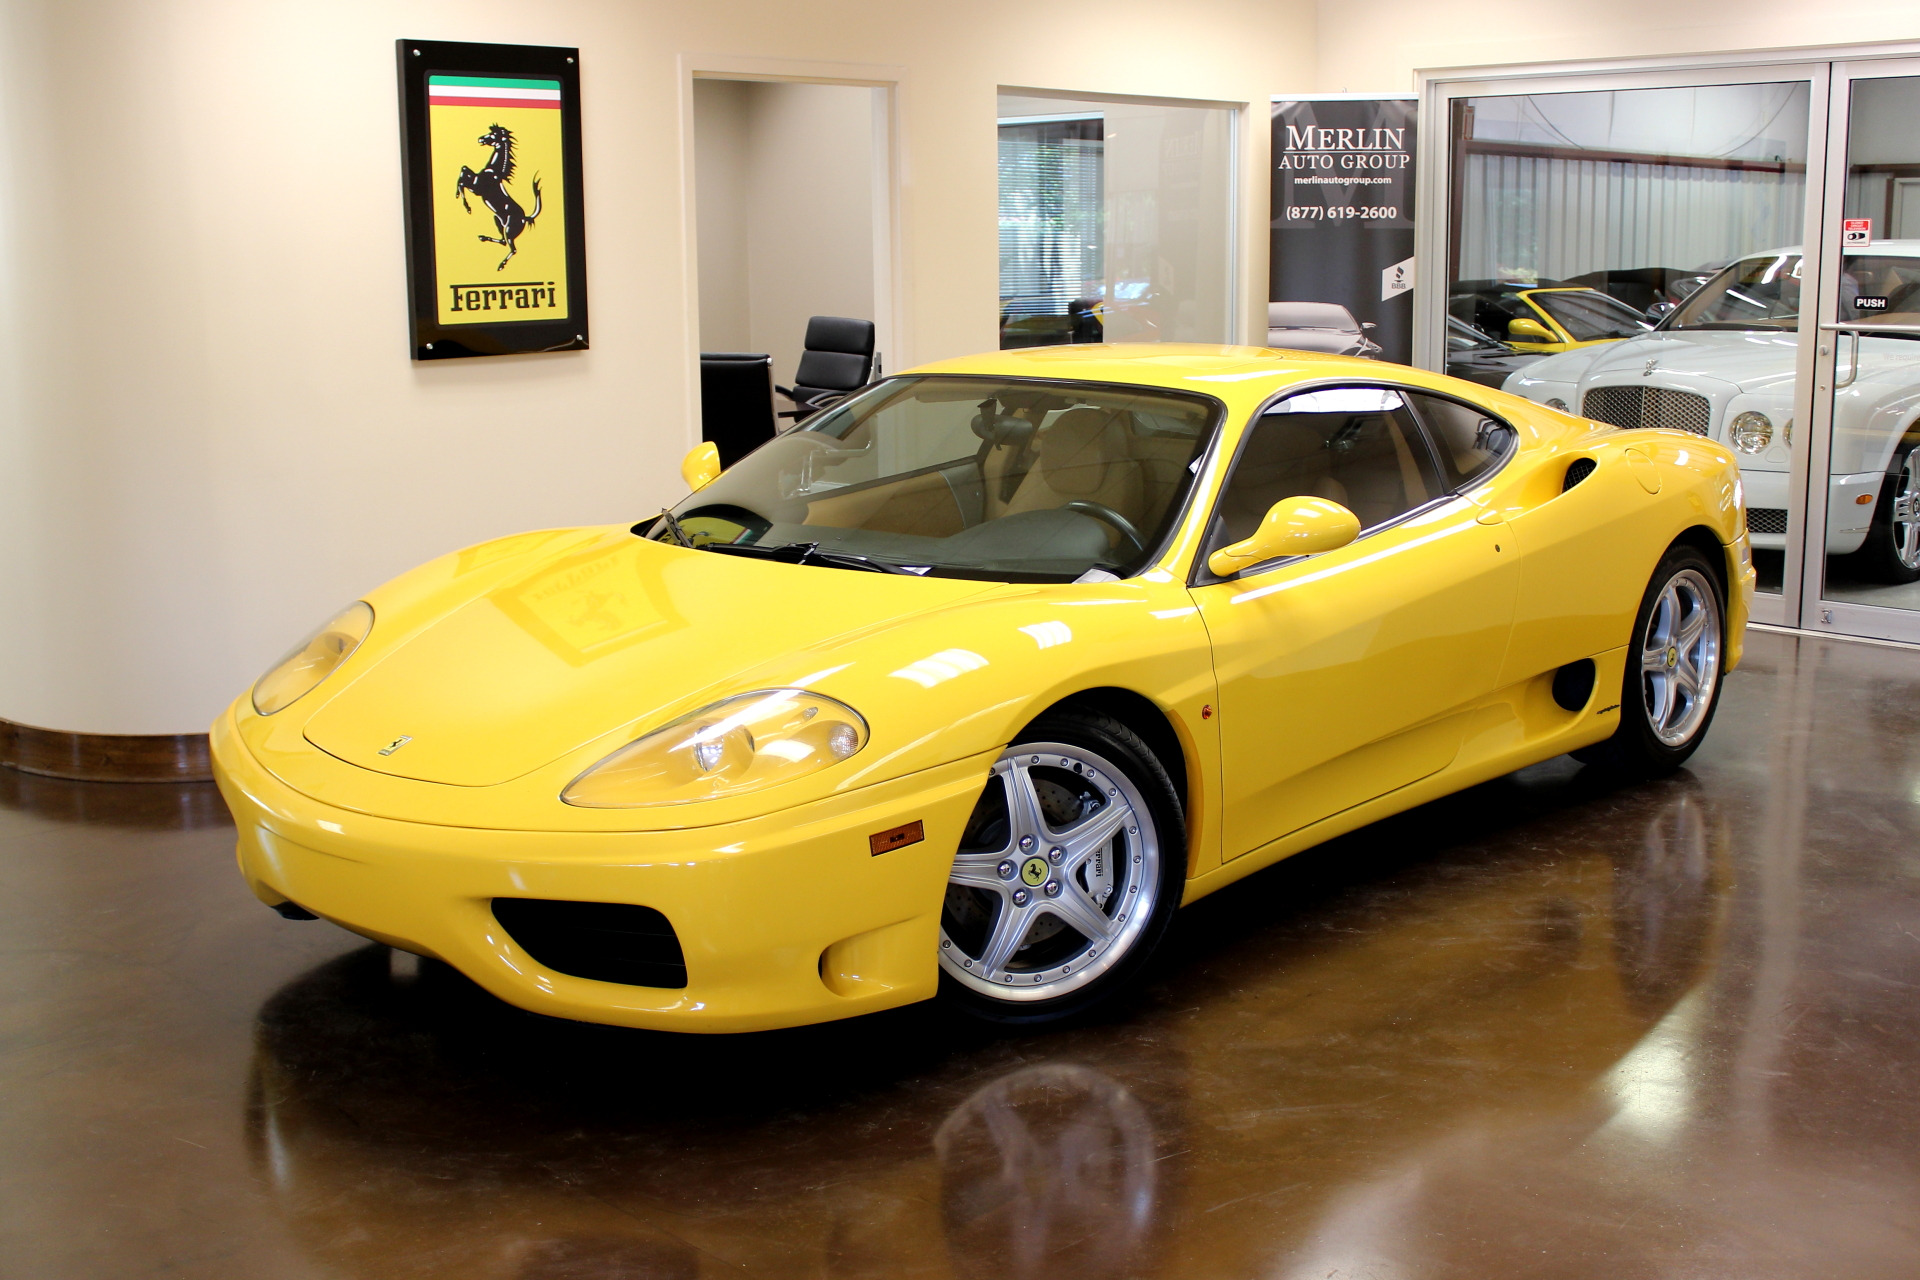 used 2000 ferrari 360 modena stock p3079 ultra luxury car from merlin auto group. Black Bedroom Furniture Sets. Home Design Ideas